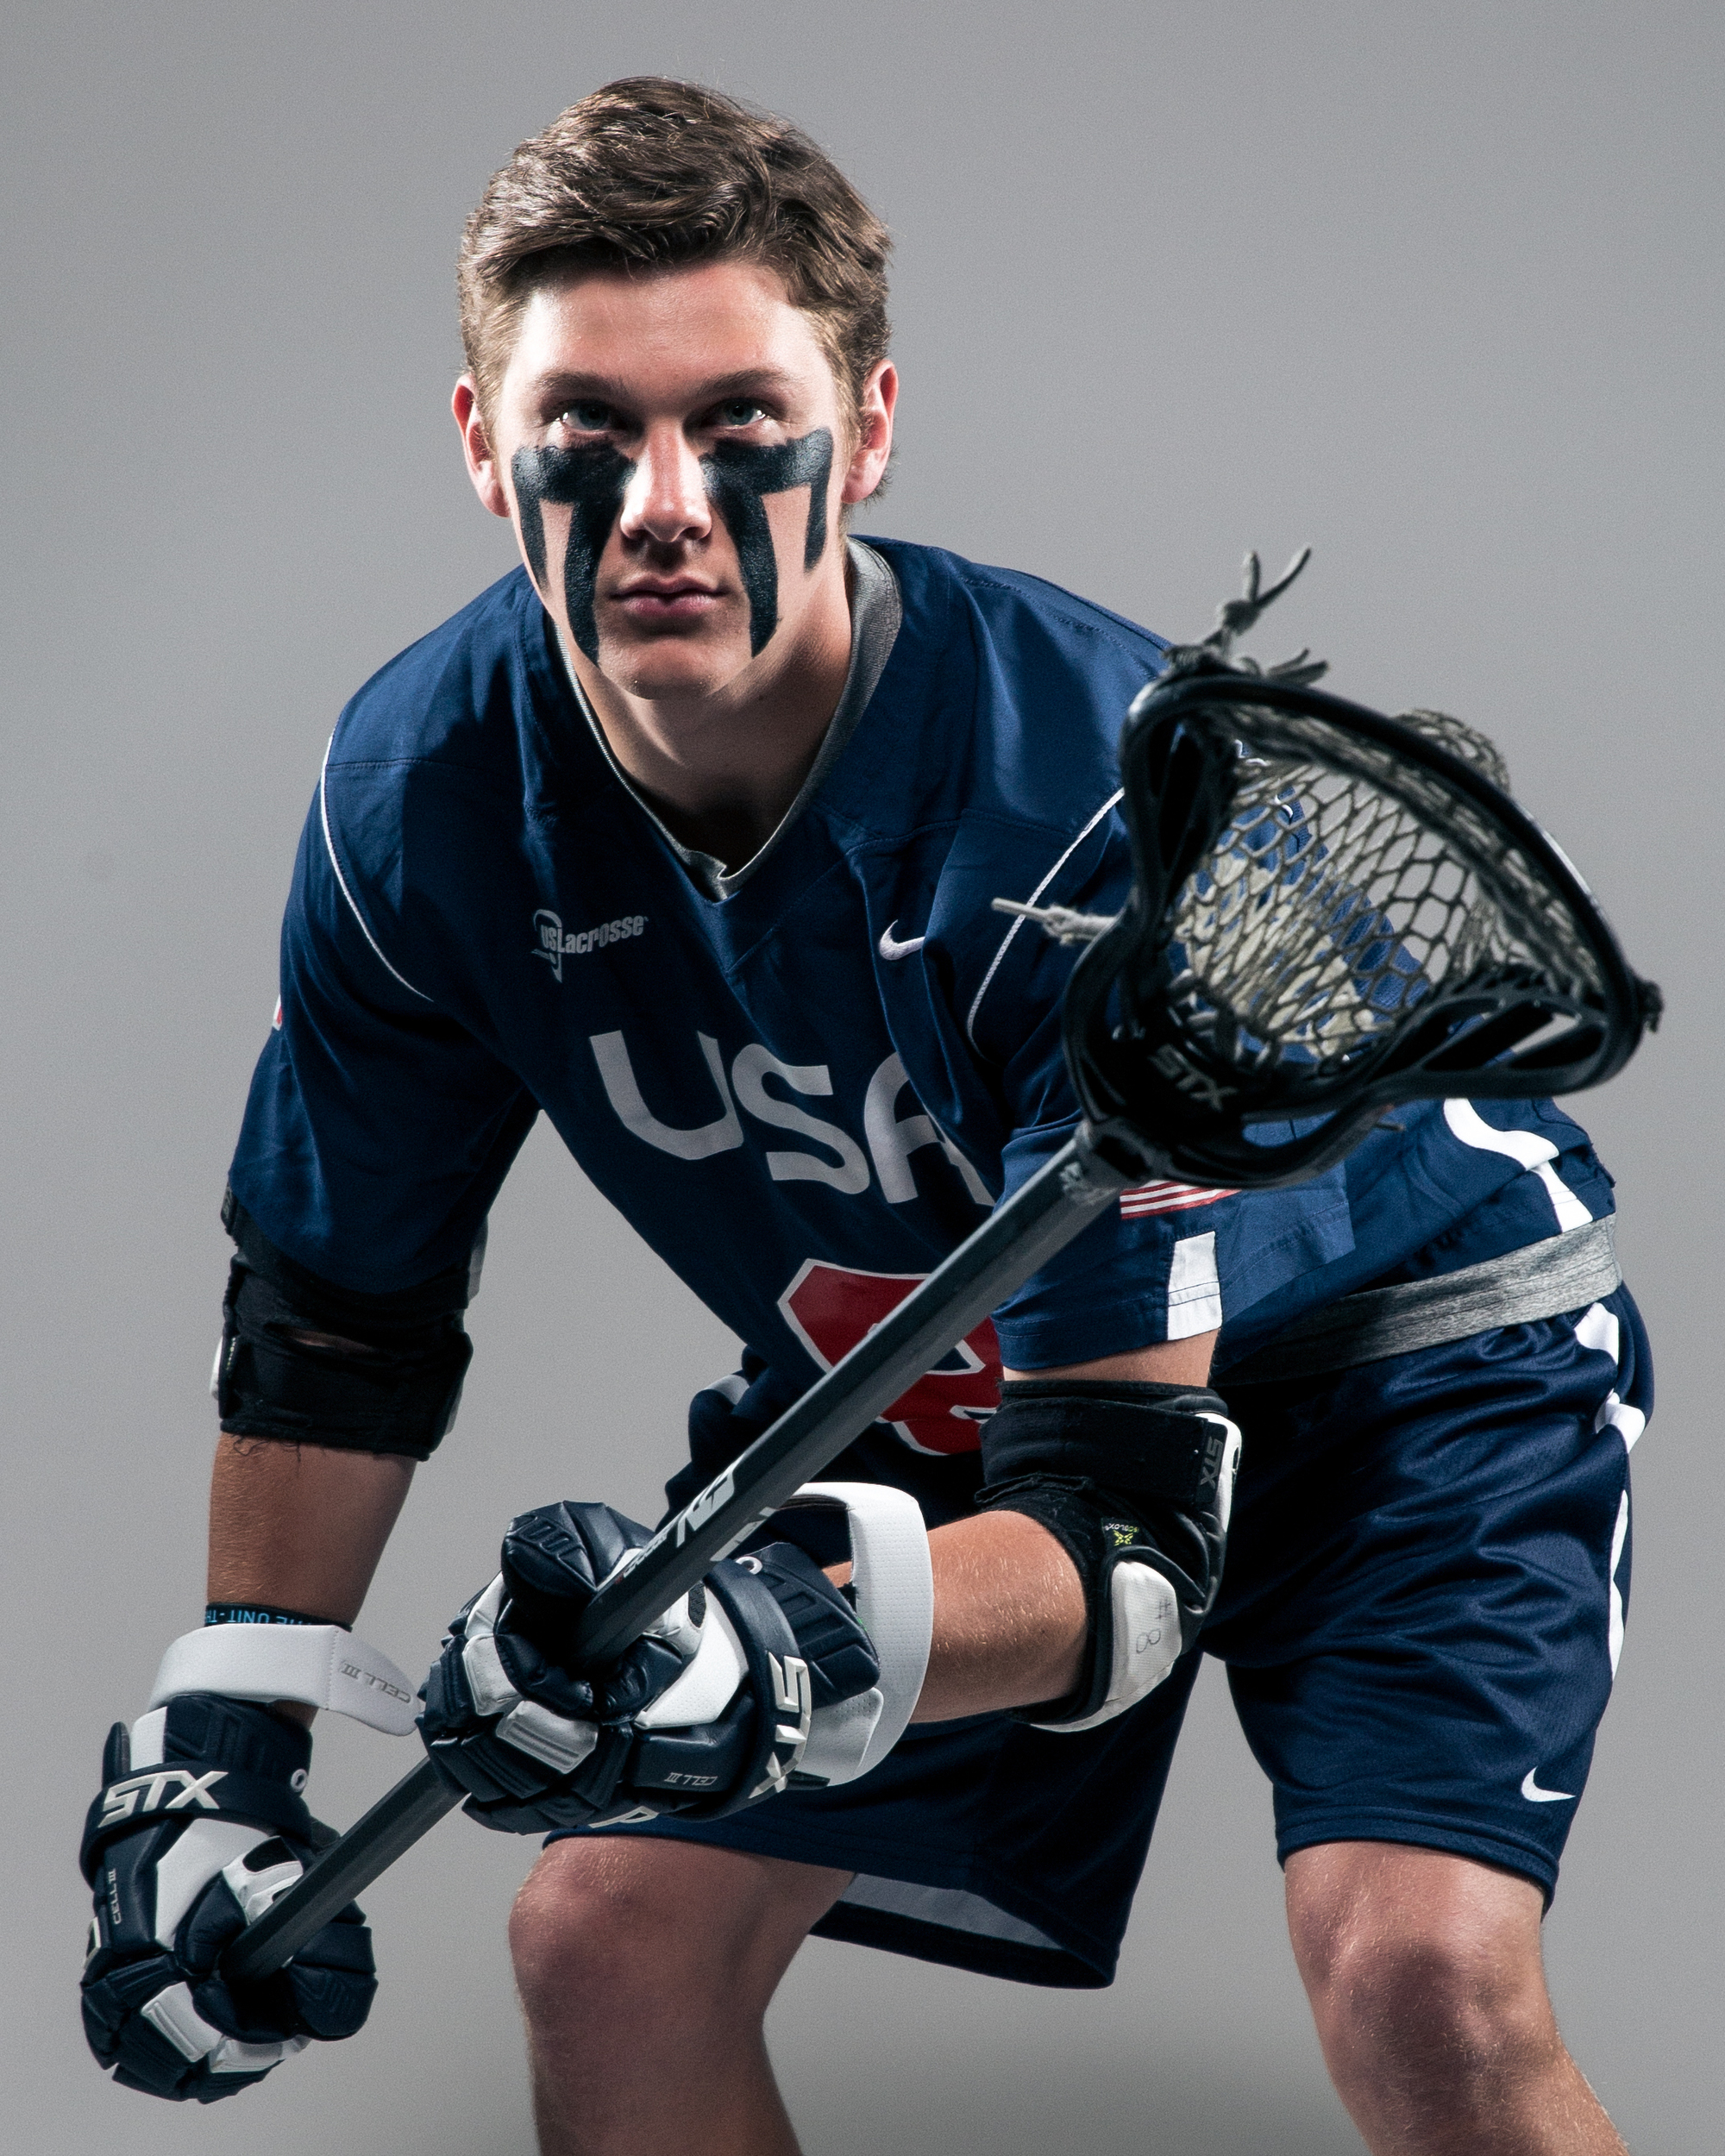 April 28, 2016; Baltimore, MD, USA; Johns Hopkins Blue Jays and U-19 Team USA defender Patrick Foley poses for a portrait at Historic Homewood Field on campus in Baltimore, MD.Credit:Brian Schneider-www.ebrianschneider.comInstagram - @ebrianschneiderTwitter - @brian_schneiderFacebook - @ebrianschneider